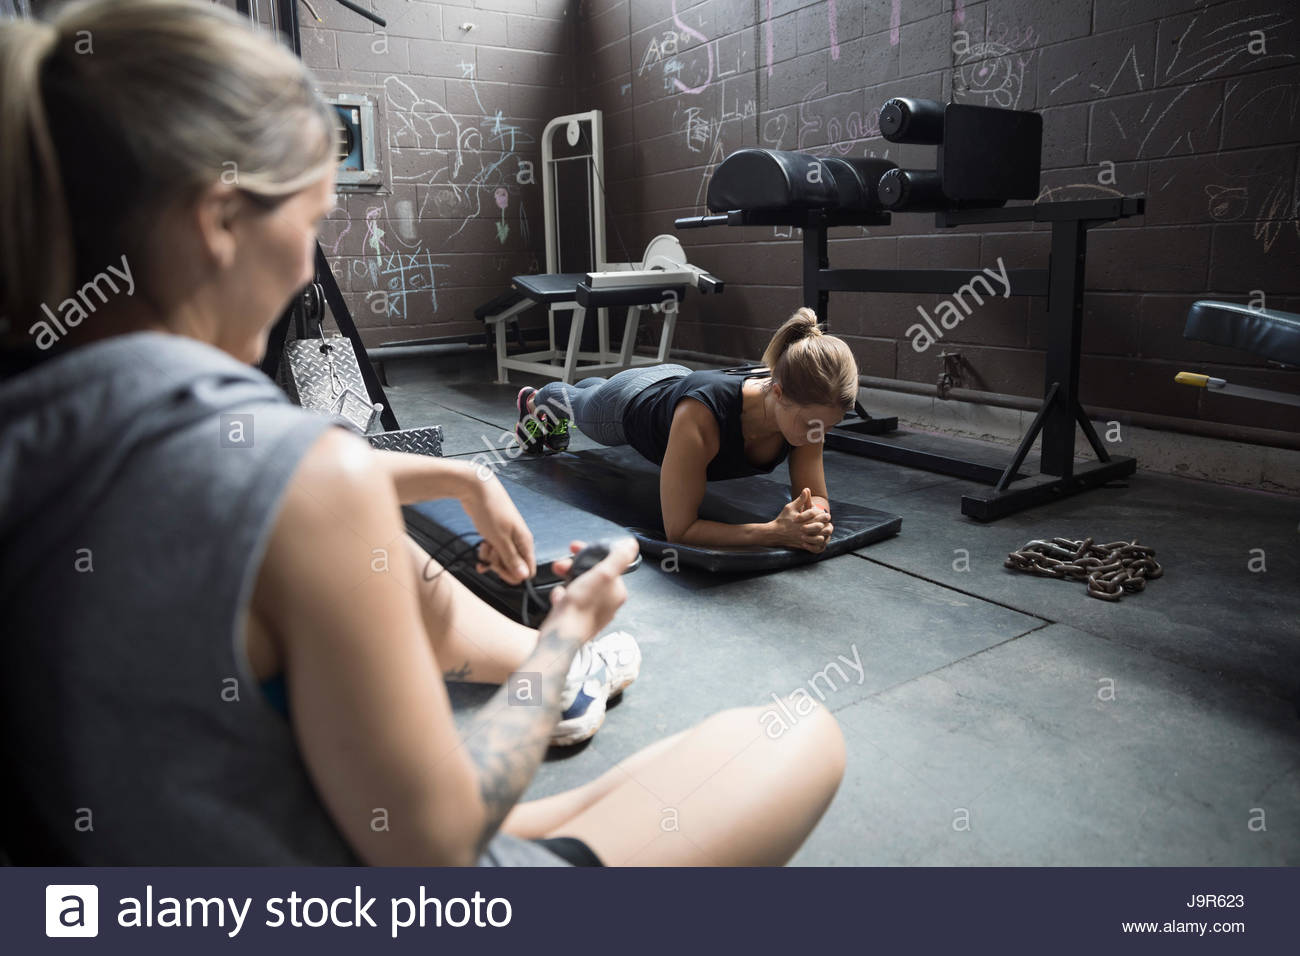 Personal trainer timing female client doing plank exercise in gritty gym - Stock Image